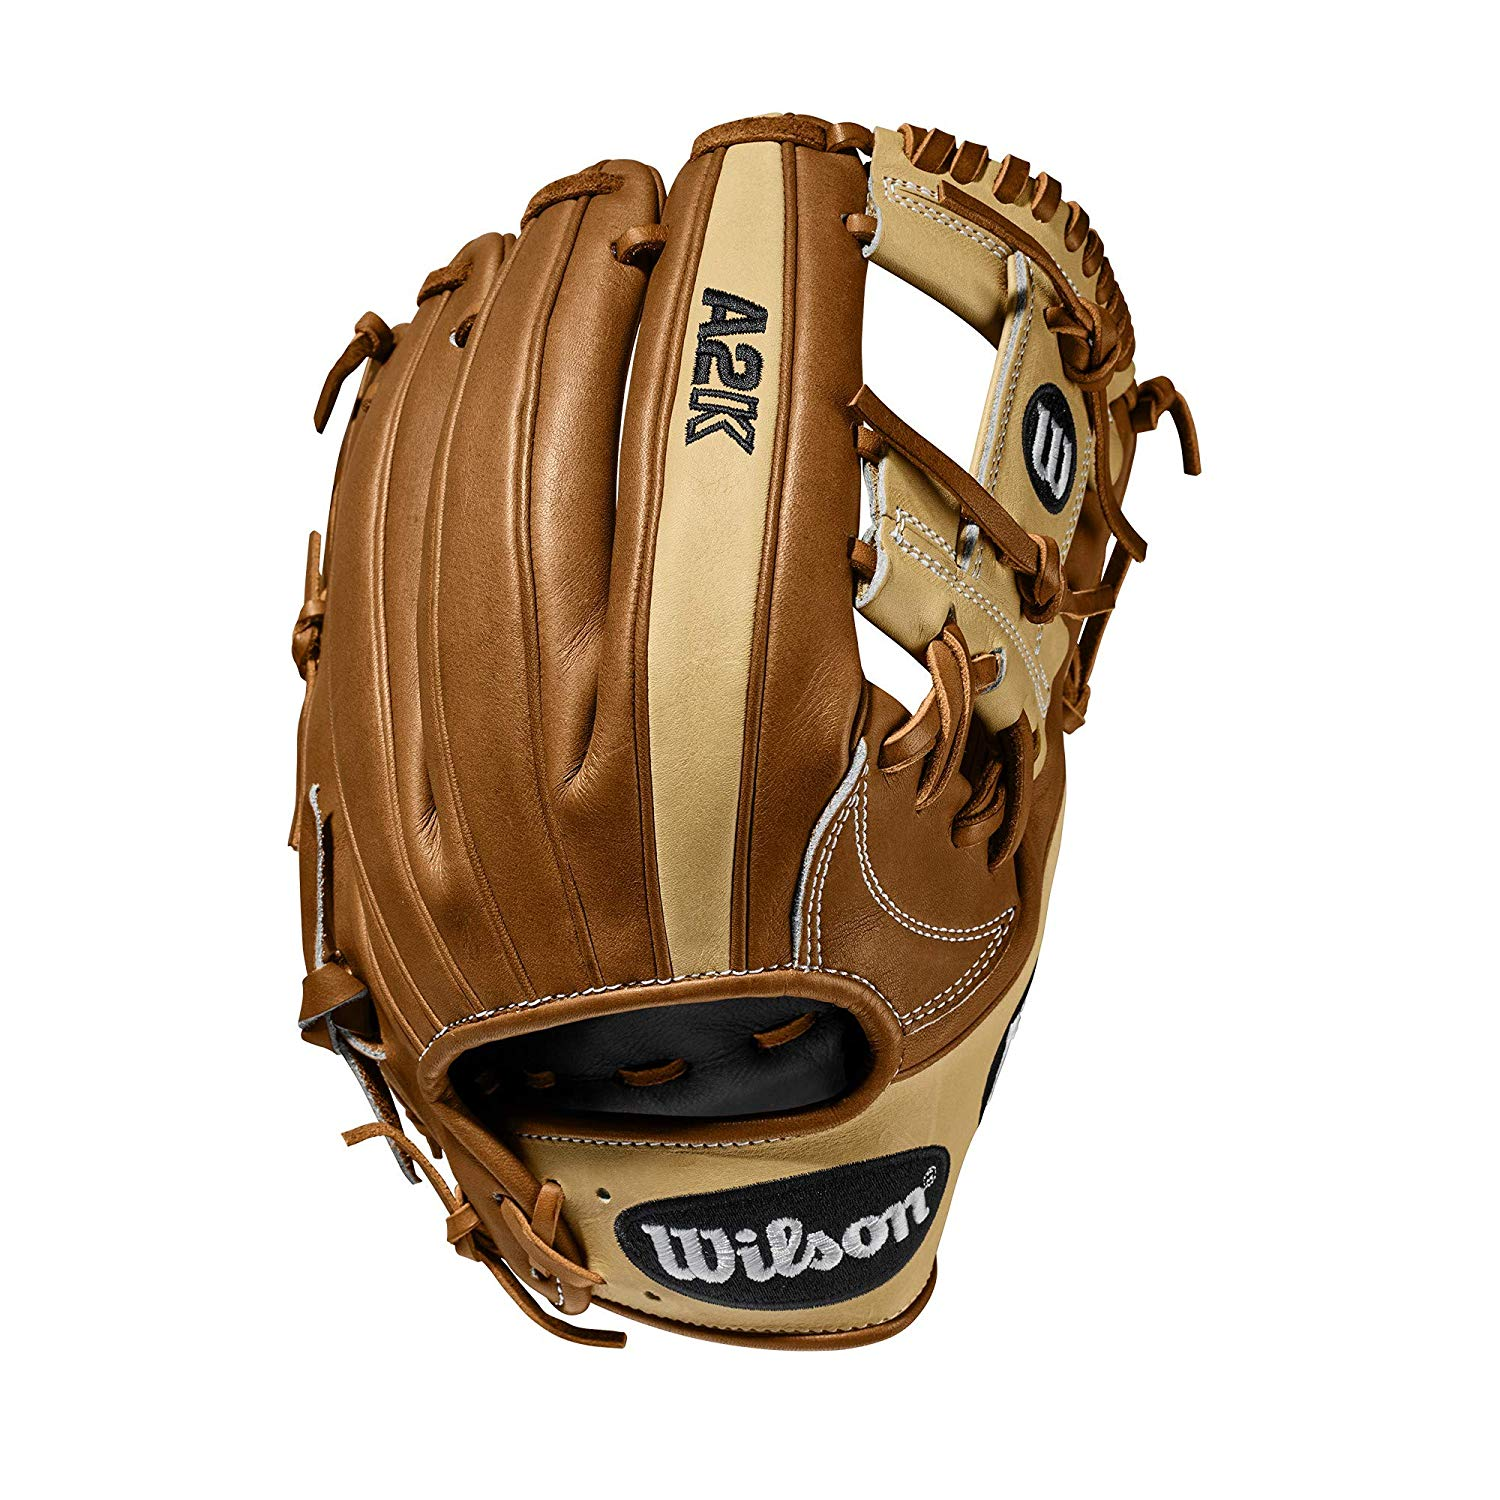 wilson-a2k-rb20-1787-baseball-gloves-11-75-right-hand-throw WTA2KRB201787-RightHandThrow Wilson 887768815219 Blonde and Saddle Tan Pro Stock Select Leather chosen for its